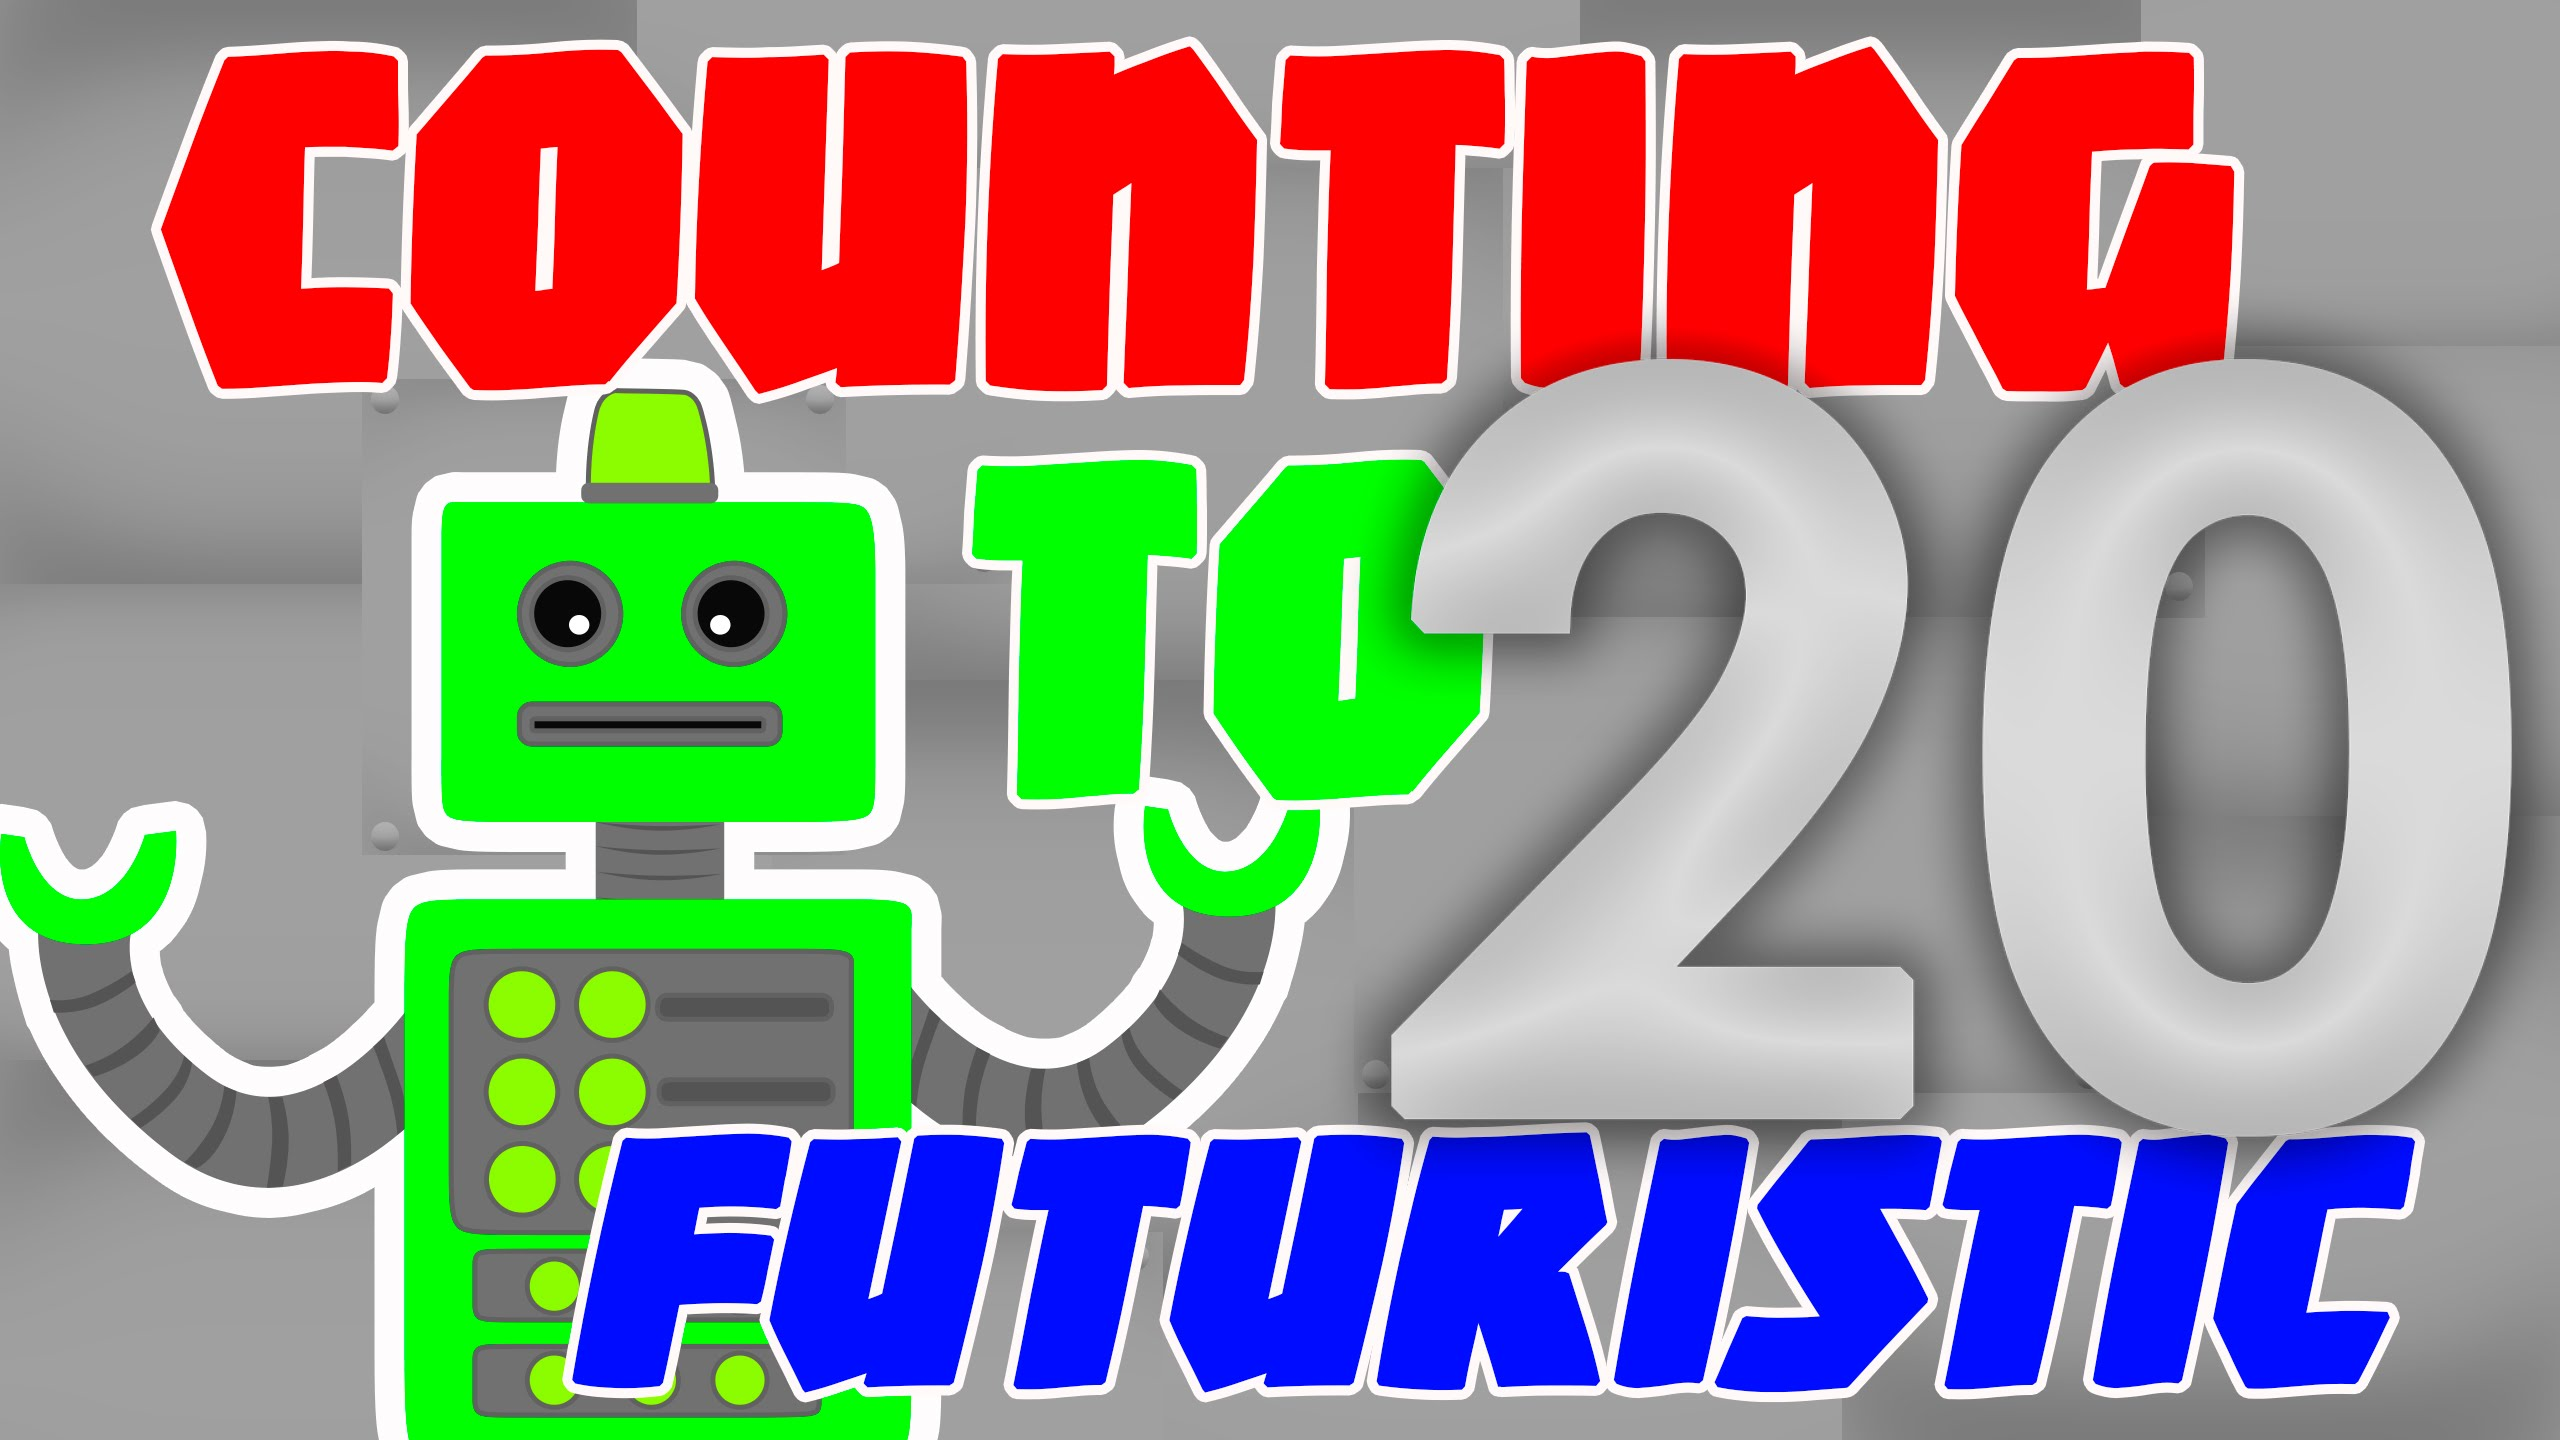 Count to 20 - Songs for Kindergarten FUTURISTIC Counting to 20 Learn ...